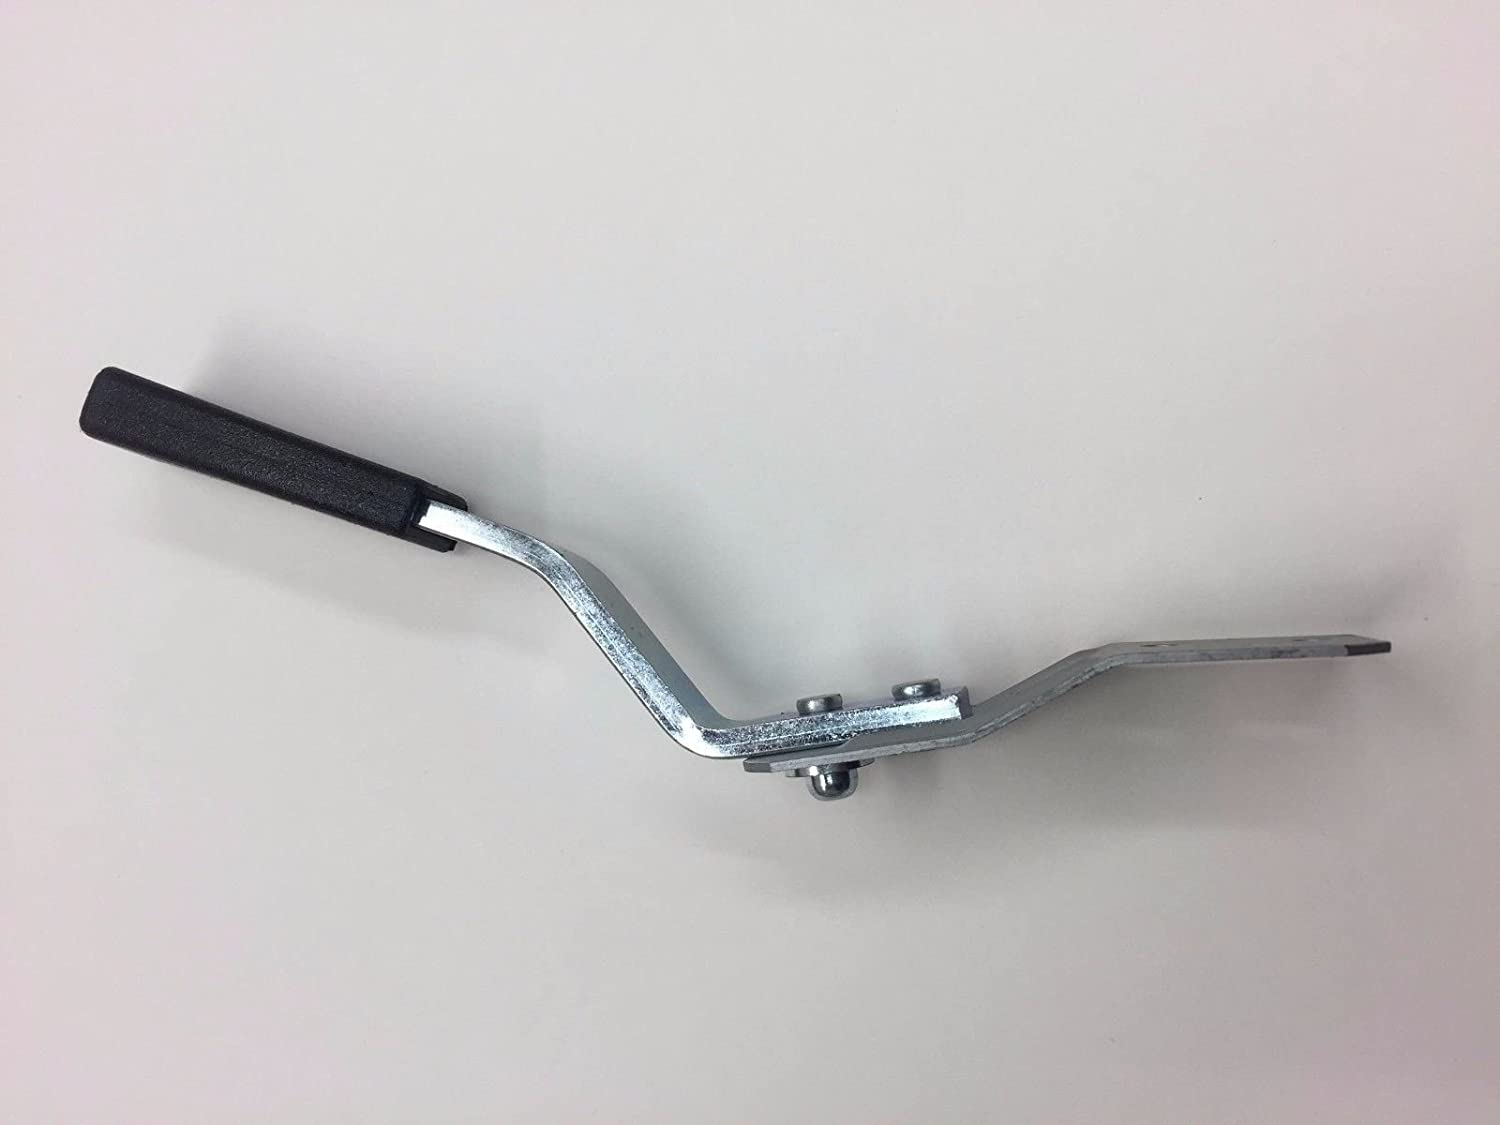 Genuine Mountfield S420PD /SP425 Lawnmower Rear height lever Part no.381003279/2 GGP